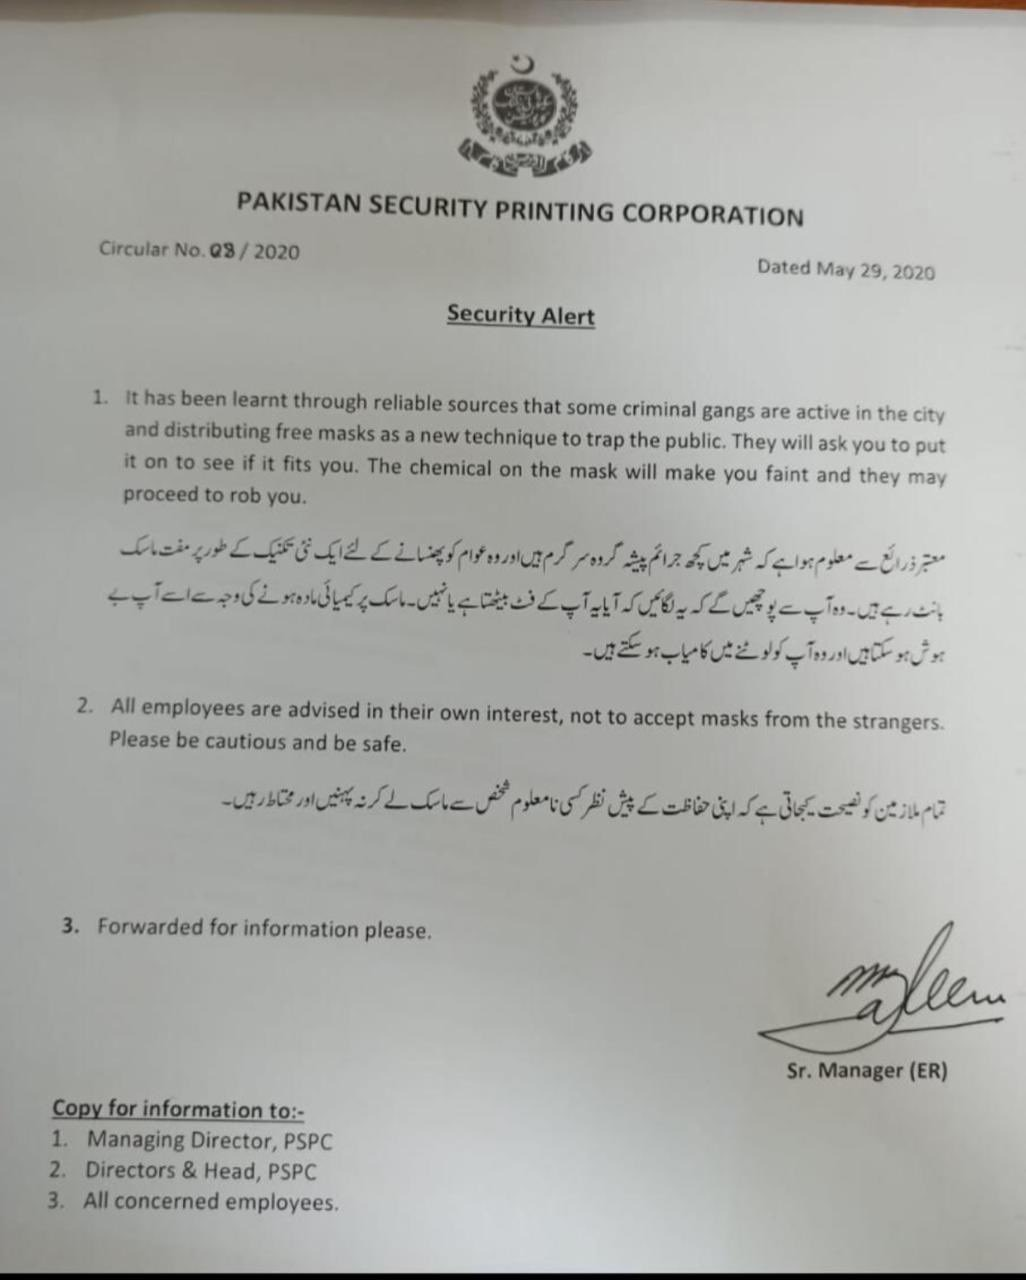 Security Alert Regarding Wearing of Free Distributed Masks | Pakistan Security Printing Corporation | May 29, 2020 - allpaknotifications.com